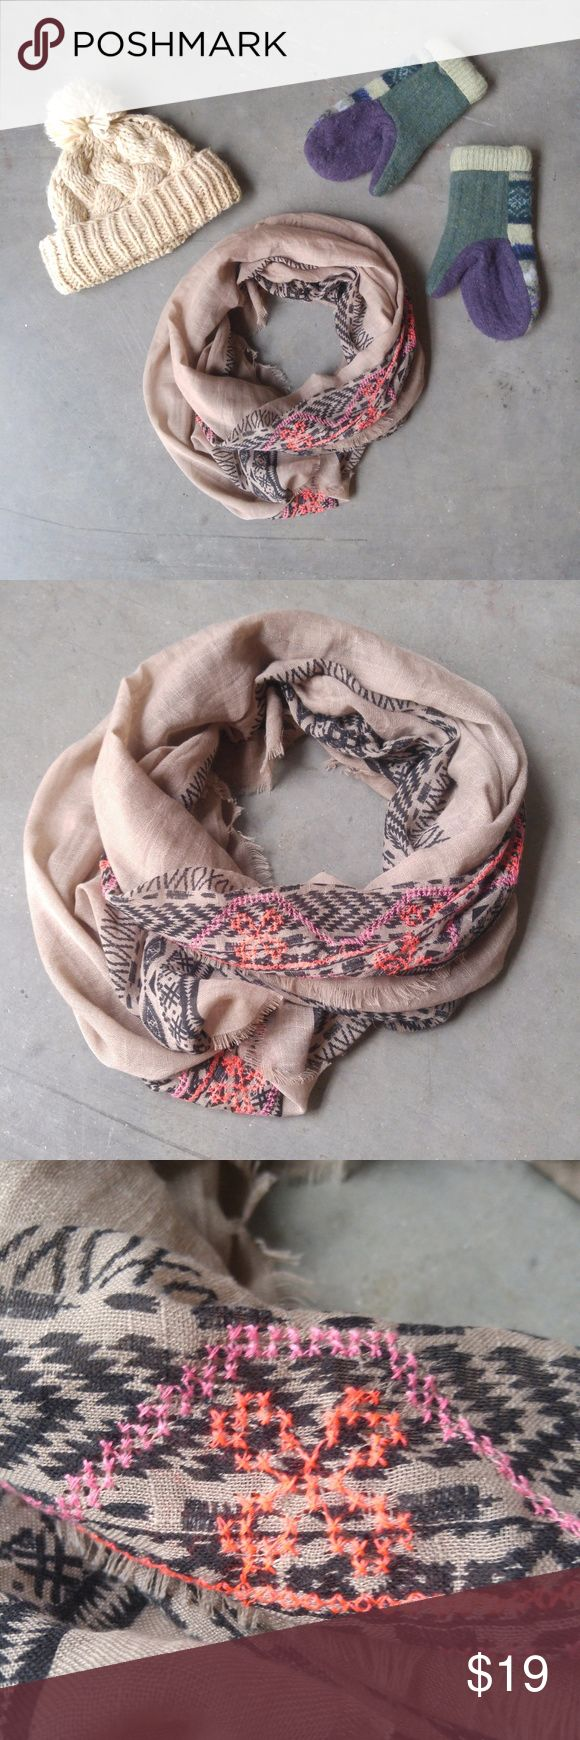 Brown Black Hot Pink Embroidered Infinity Scarf Infinity scarf from Target in excellent condition! The wide-ness of this scarf gives it a full look when wrapped around. Light brown background with black and hot pick embroidered on both long edges. Semi-sheer and lightweight. No trades. No modeling. Make a reasonable offer. Thanks! *Cover photo accessories not included* Target Accessories Scarves & Wraps